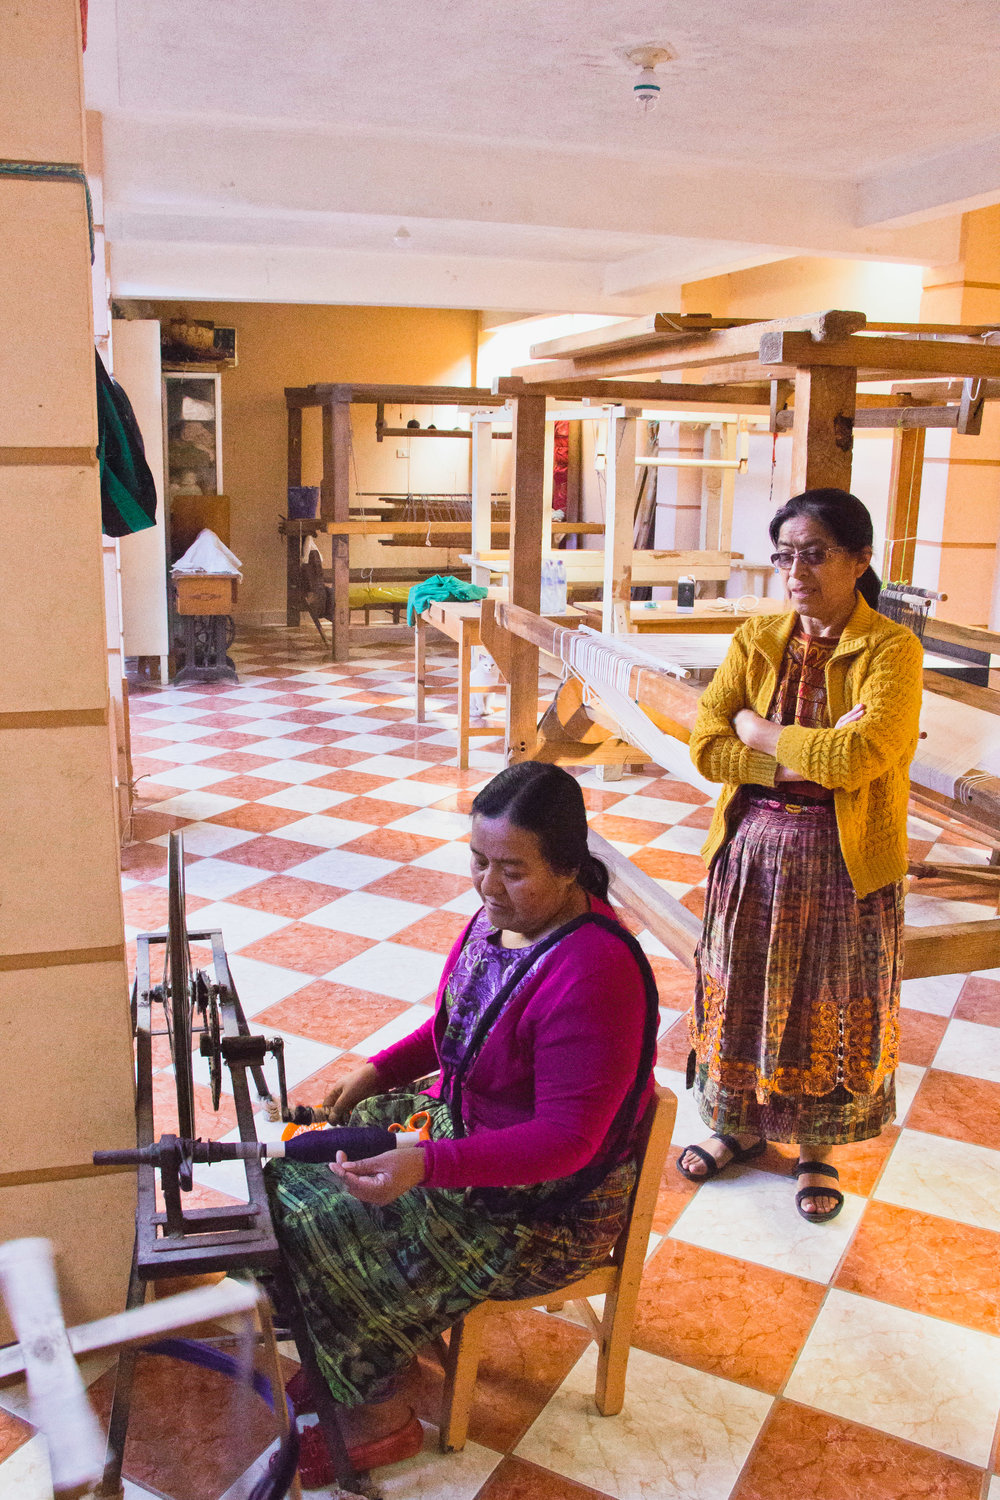 LIDIA SERECH CUTZAL OVERSEES CO-WORKER ESPERANZA AS SHE SPOOLS THE THREAD IN THE WORKSHOP OF THEIR HOME COMALAPA, GUATEMALA ON JAN. 12. THE FRIENDS MET NEARLY THIRTY YEARS AGO.